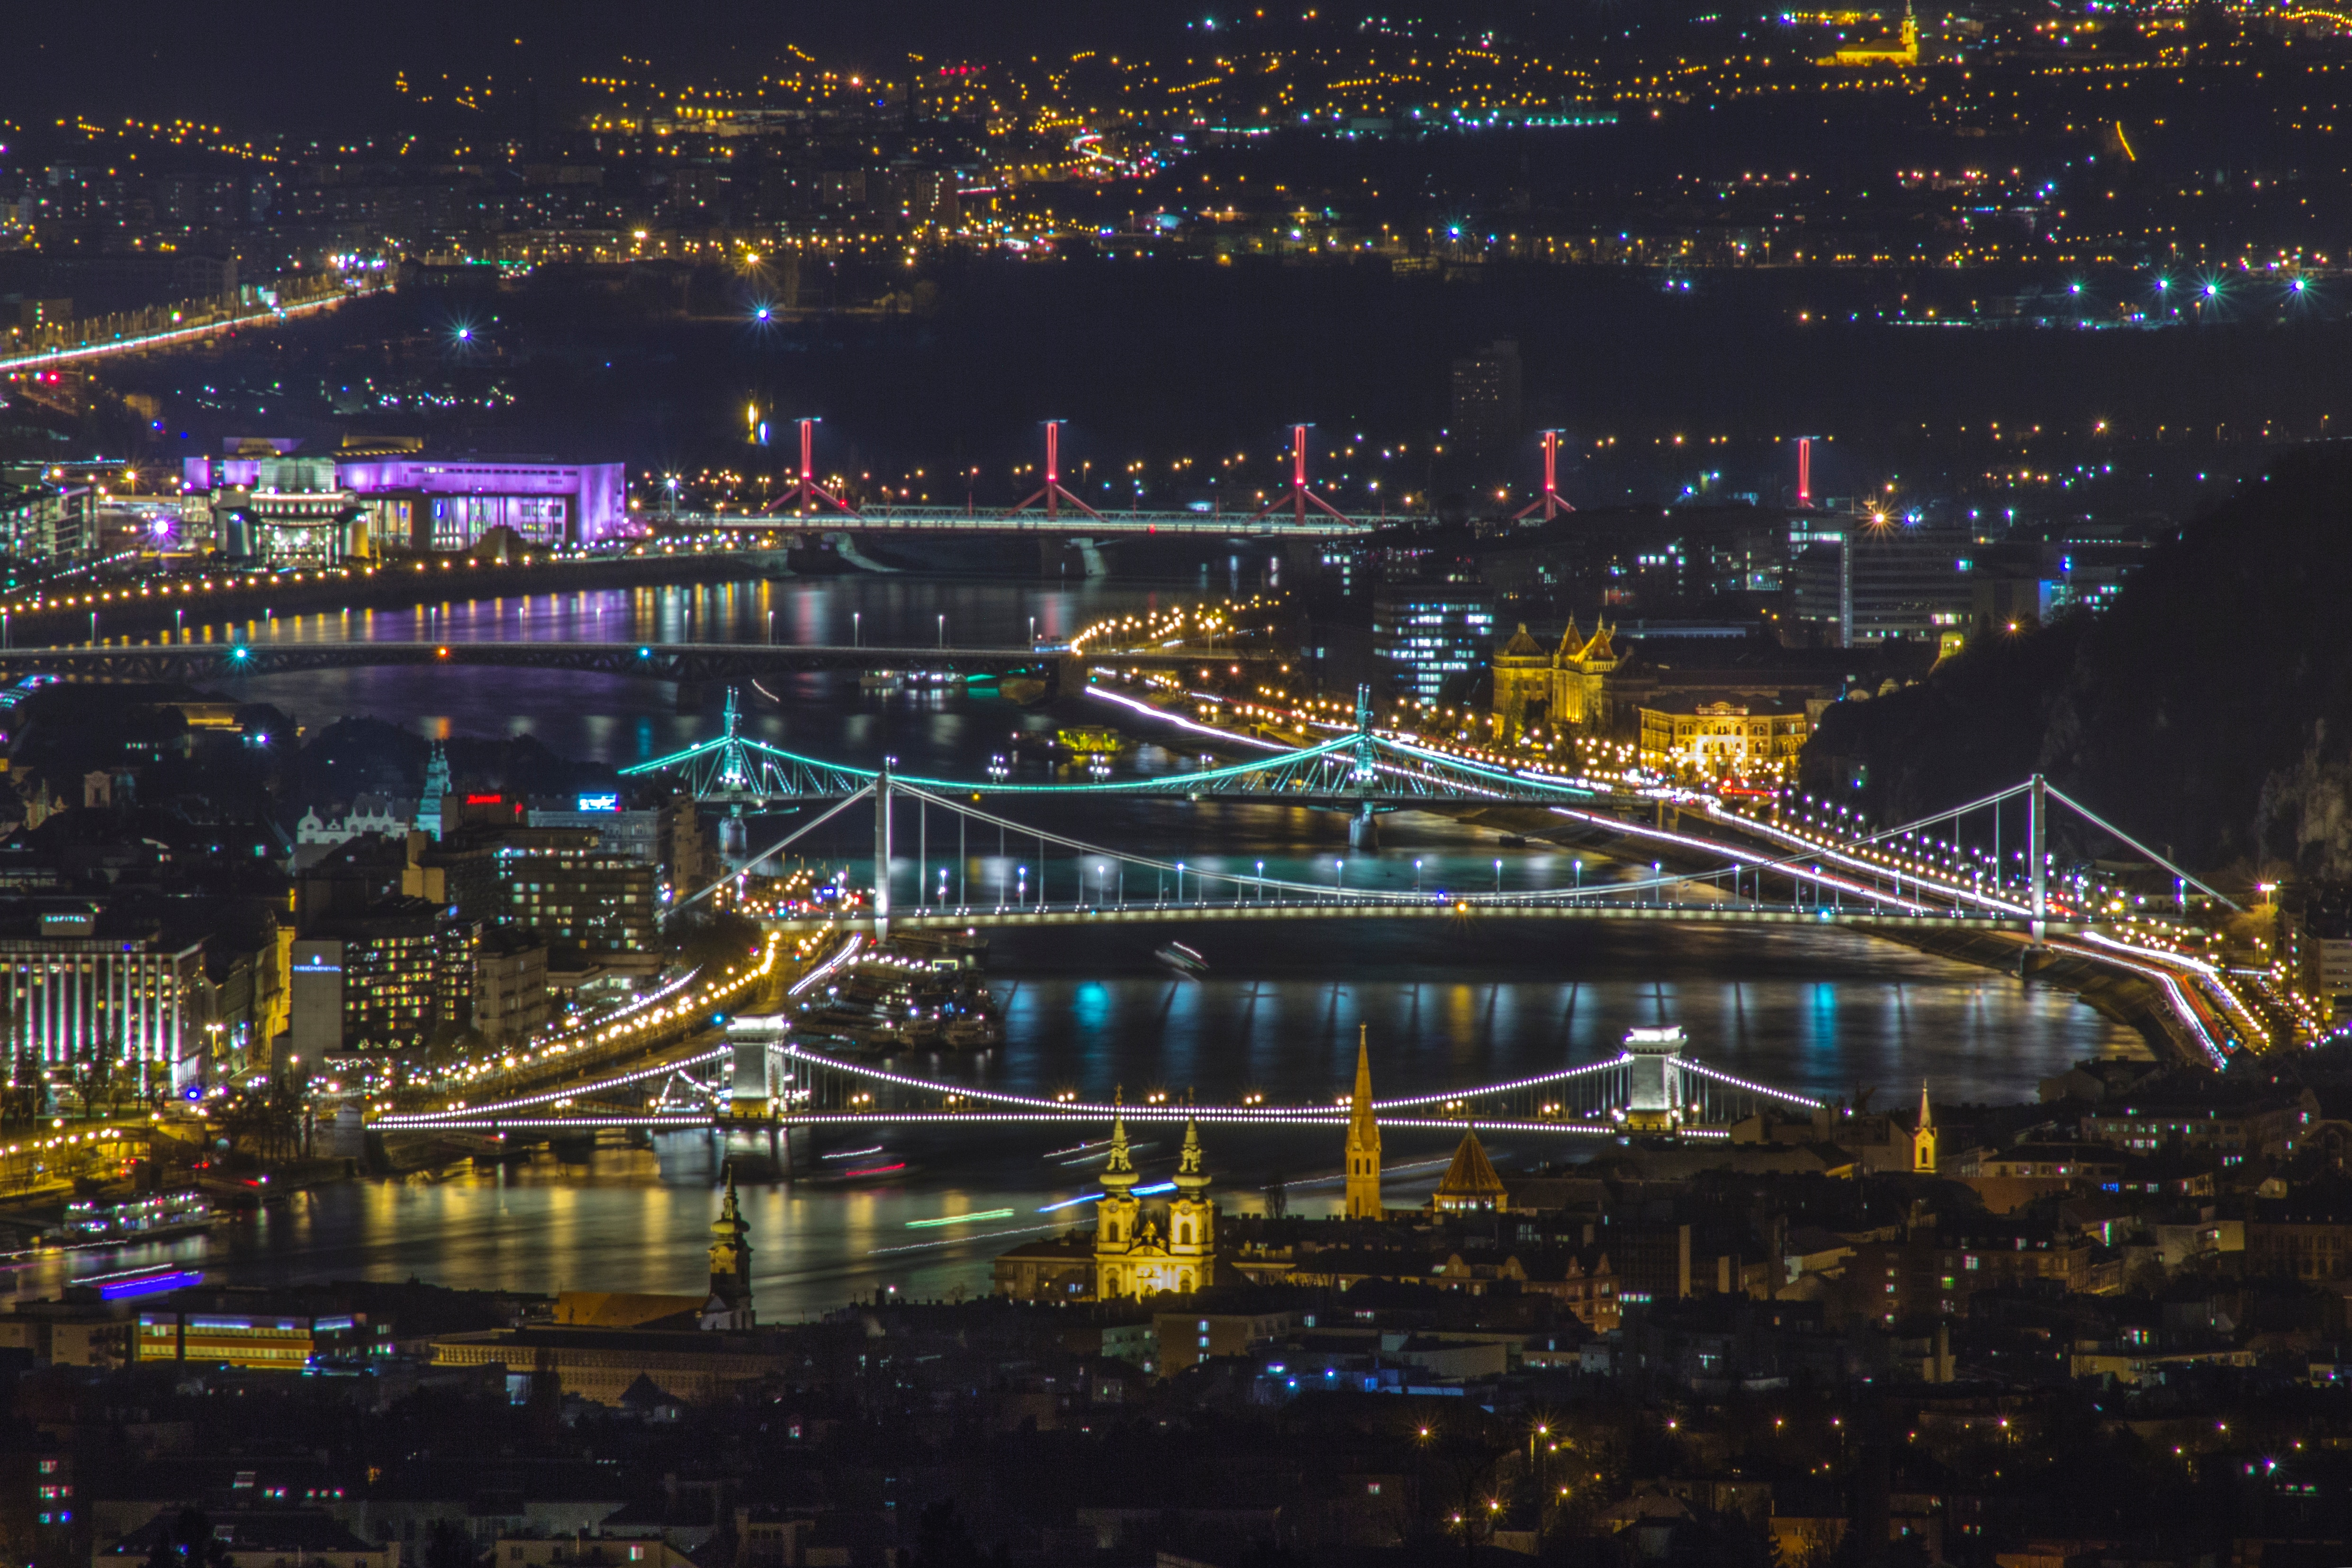 Budapest by night from a drone